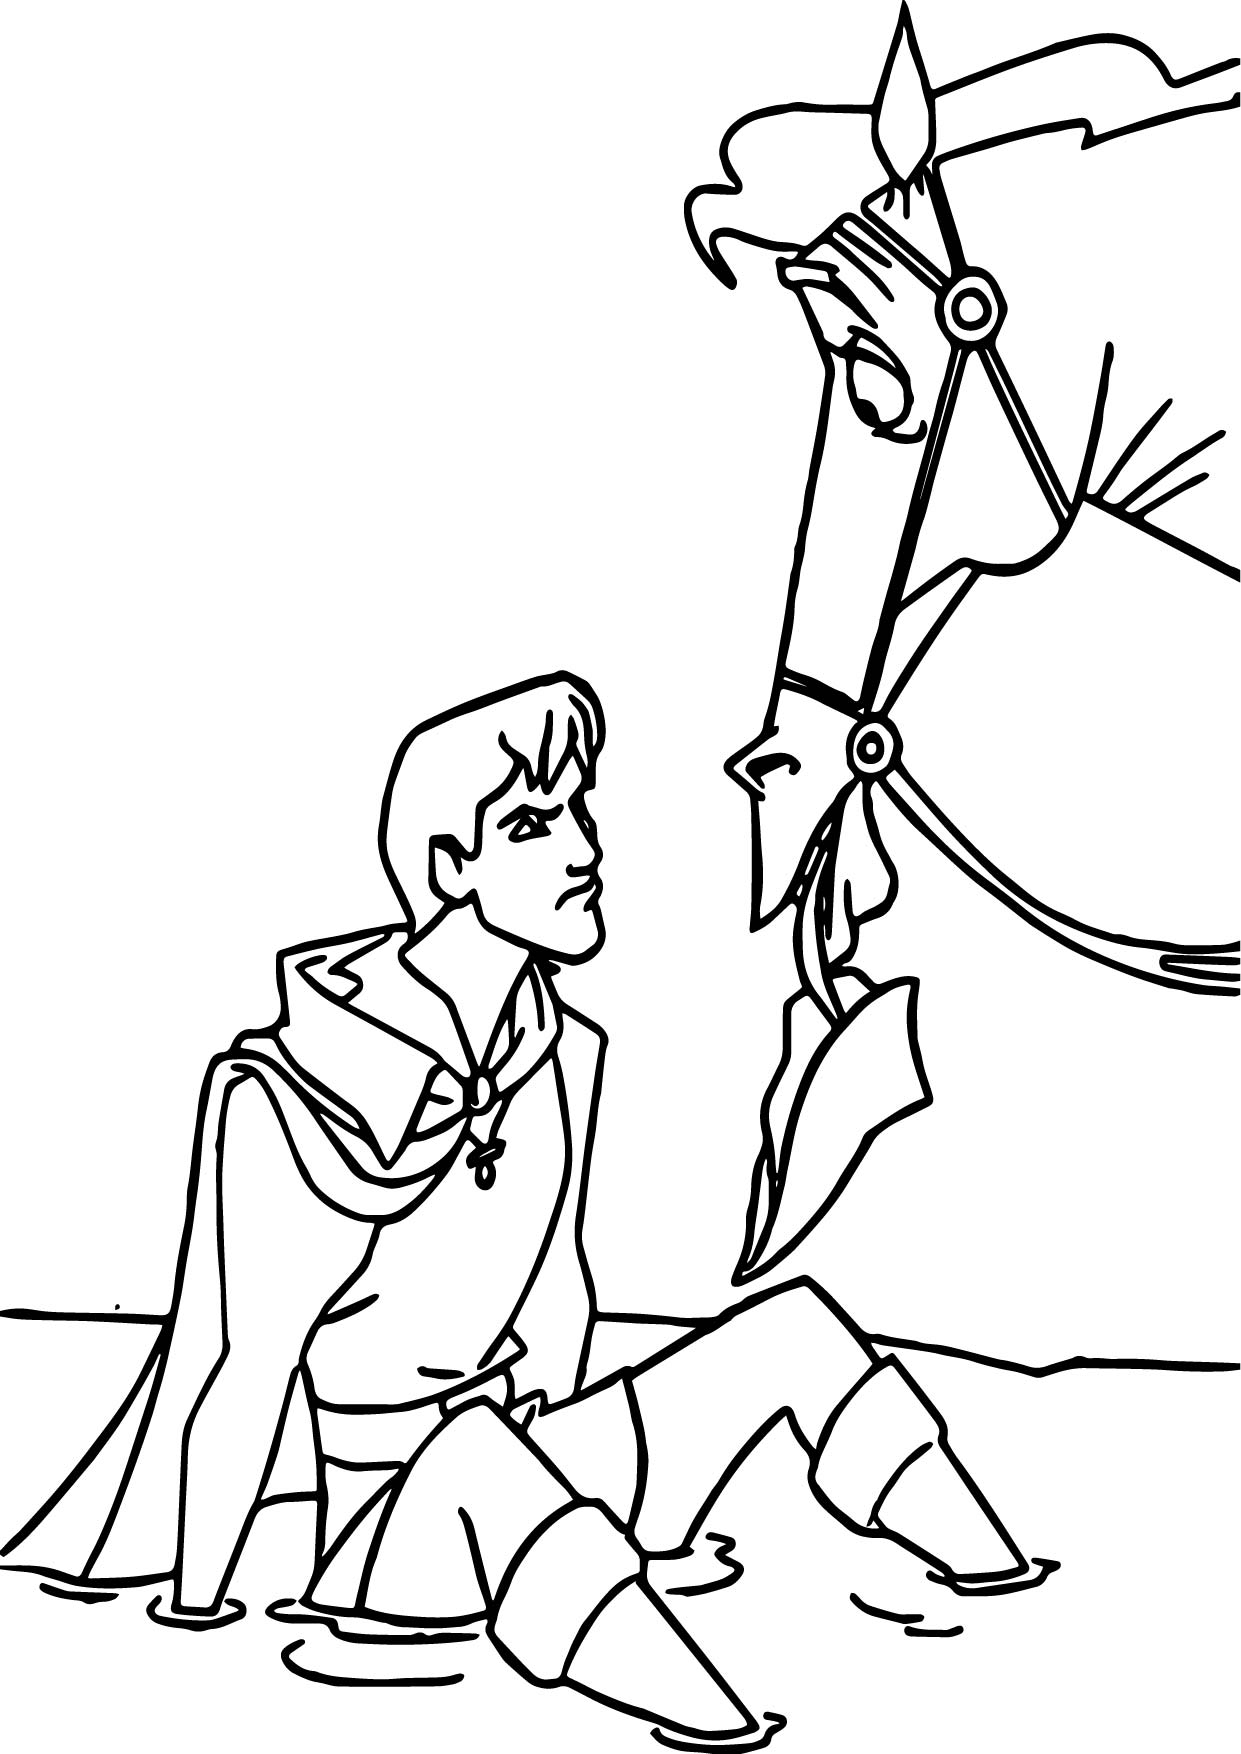 prince phillip and samson horse coloring pages wecoloringpage